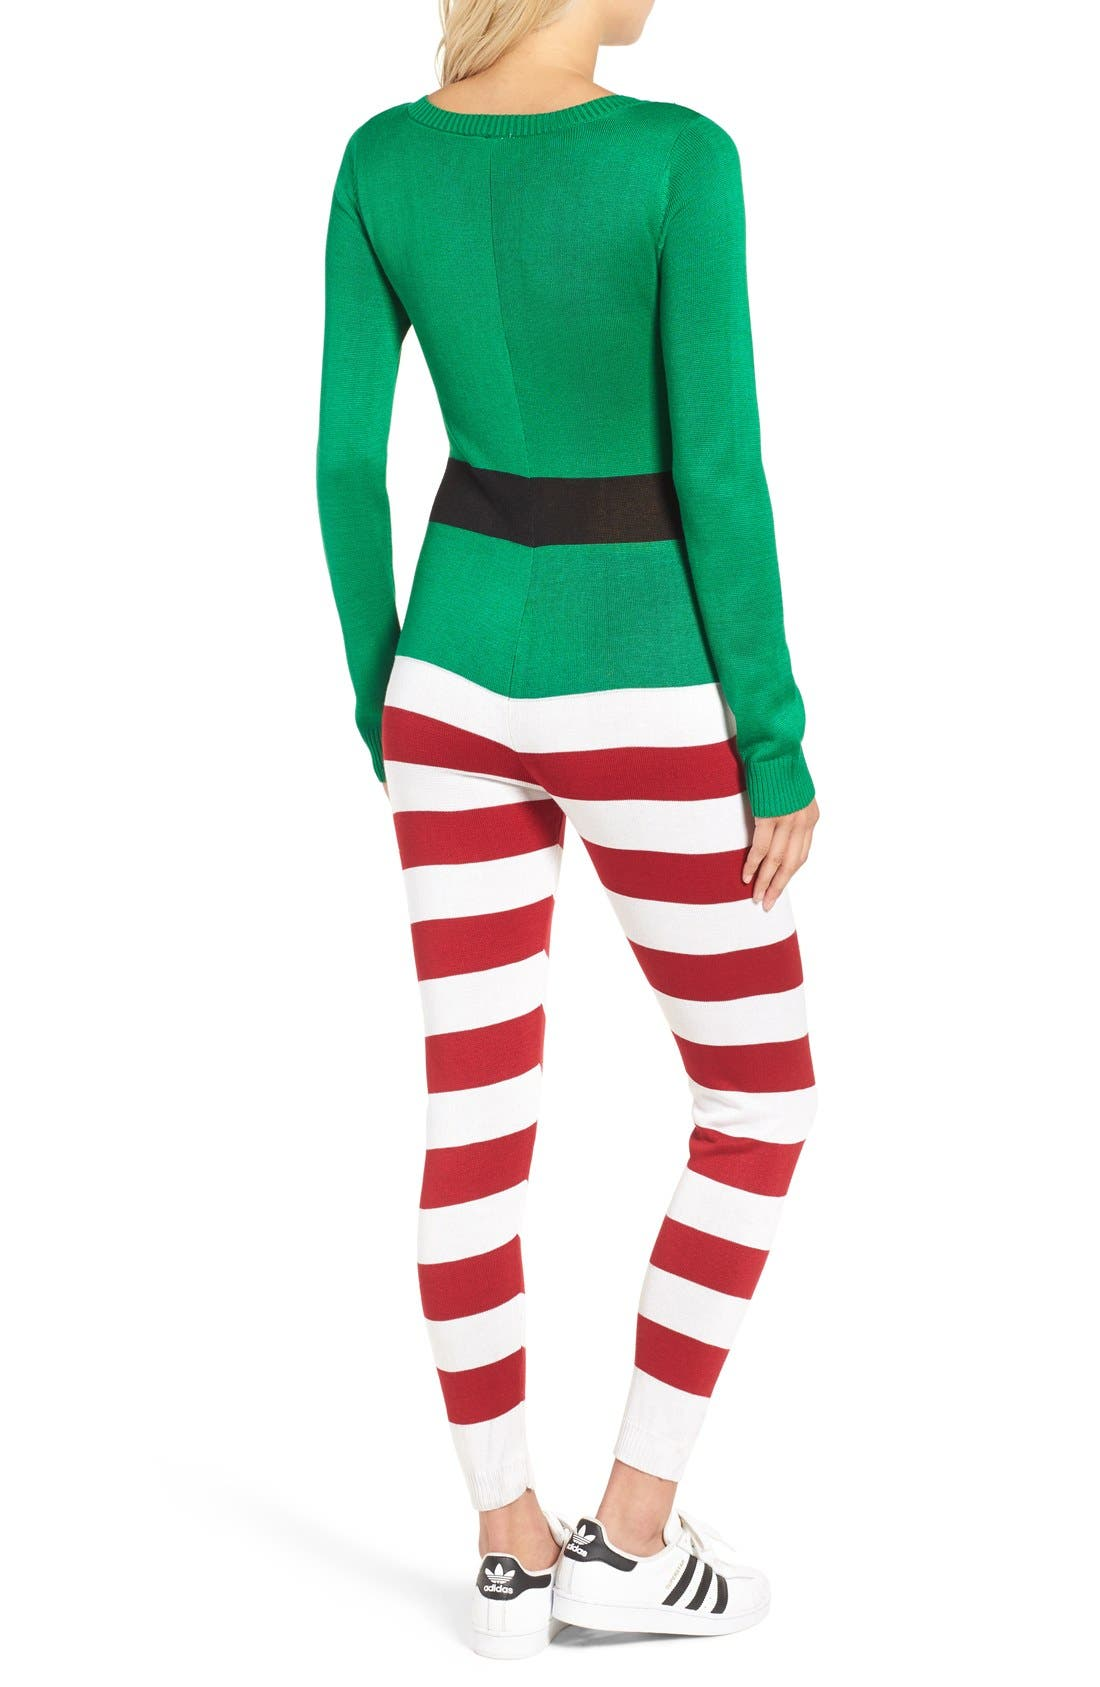 LOVE BY DESIGN,                             Christmas One-Piece Pajamas,                             Alternate thumbnail 5, color,                             314